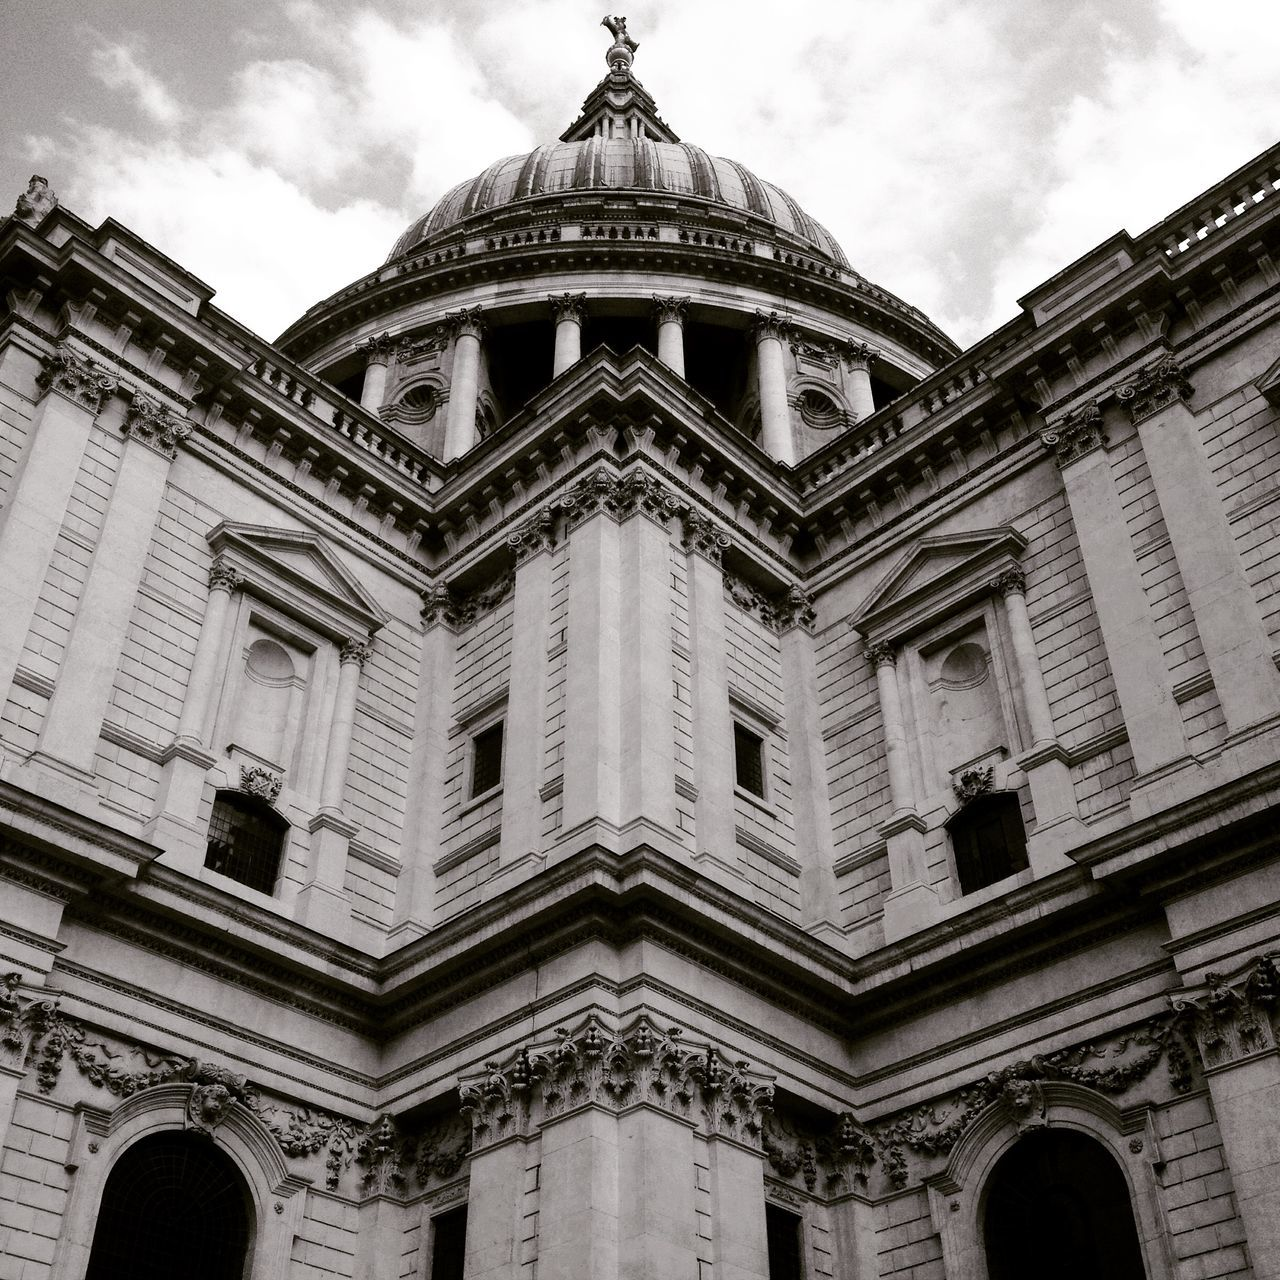 Looking up at St Paul's Cathedral in London. Black and white. Close up details of St Paul's Cathedral by Christopher Wren. Architecture Architecture Architecture Facade Architecture Photography Architecture_bw Architecturelovers Architecturephotography Architectureporn Building Exterior Built Structure City Of London City Of London Tourism Cloud - Sky London London Architecture LONDON❤ Low Angle View No People Outdoors Pediment St Paul's Cathedral St Paul's Cathedral London St Pauls Cathedral